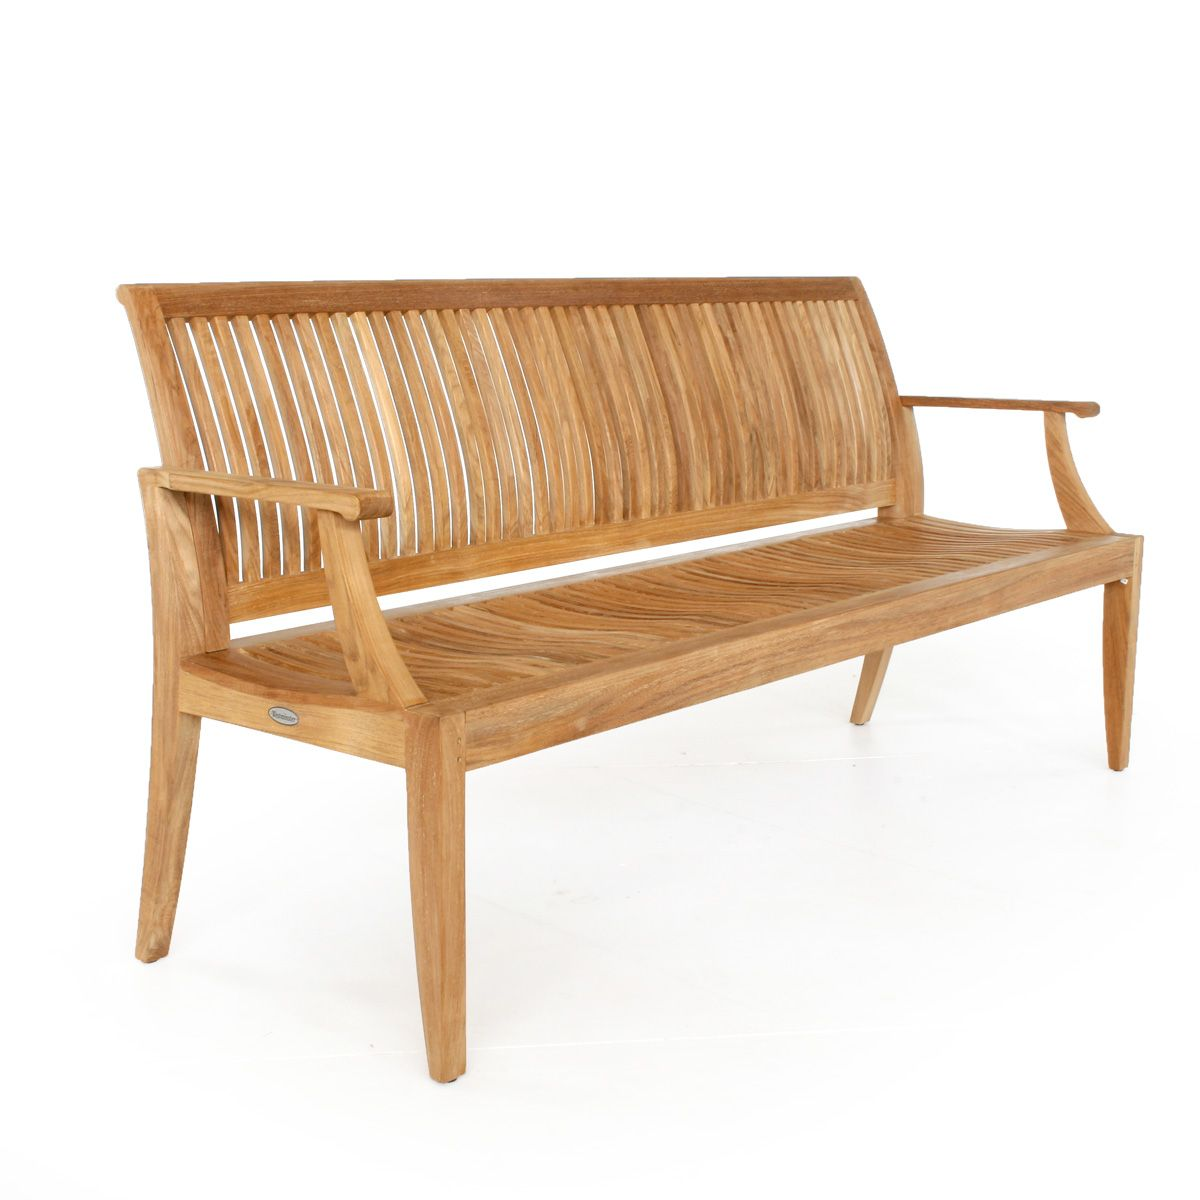 6 Ft Laguna Teak Bench Westminster Teak Teak Bench Teak Bench Outdoor Teak Outdoor Furniture